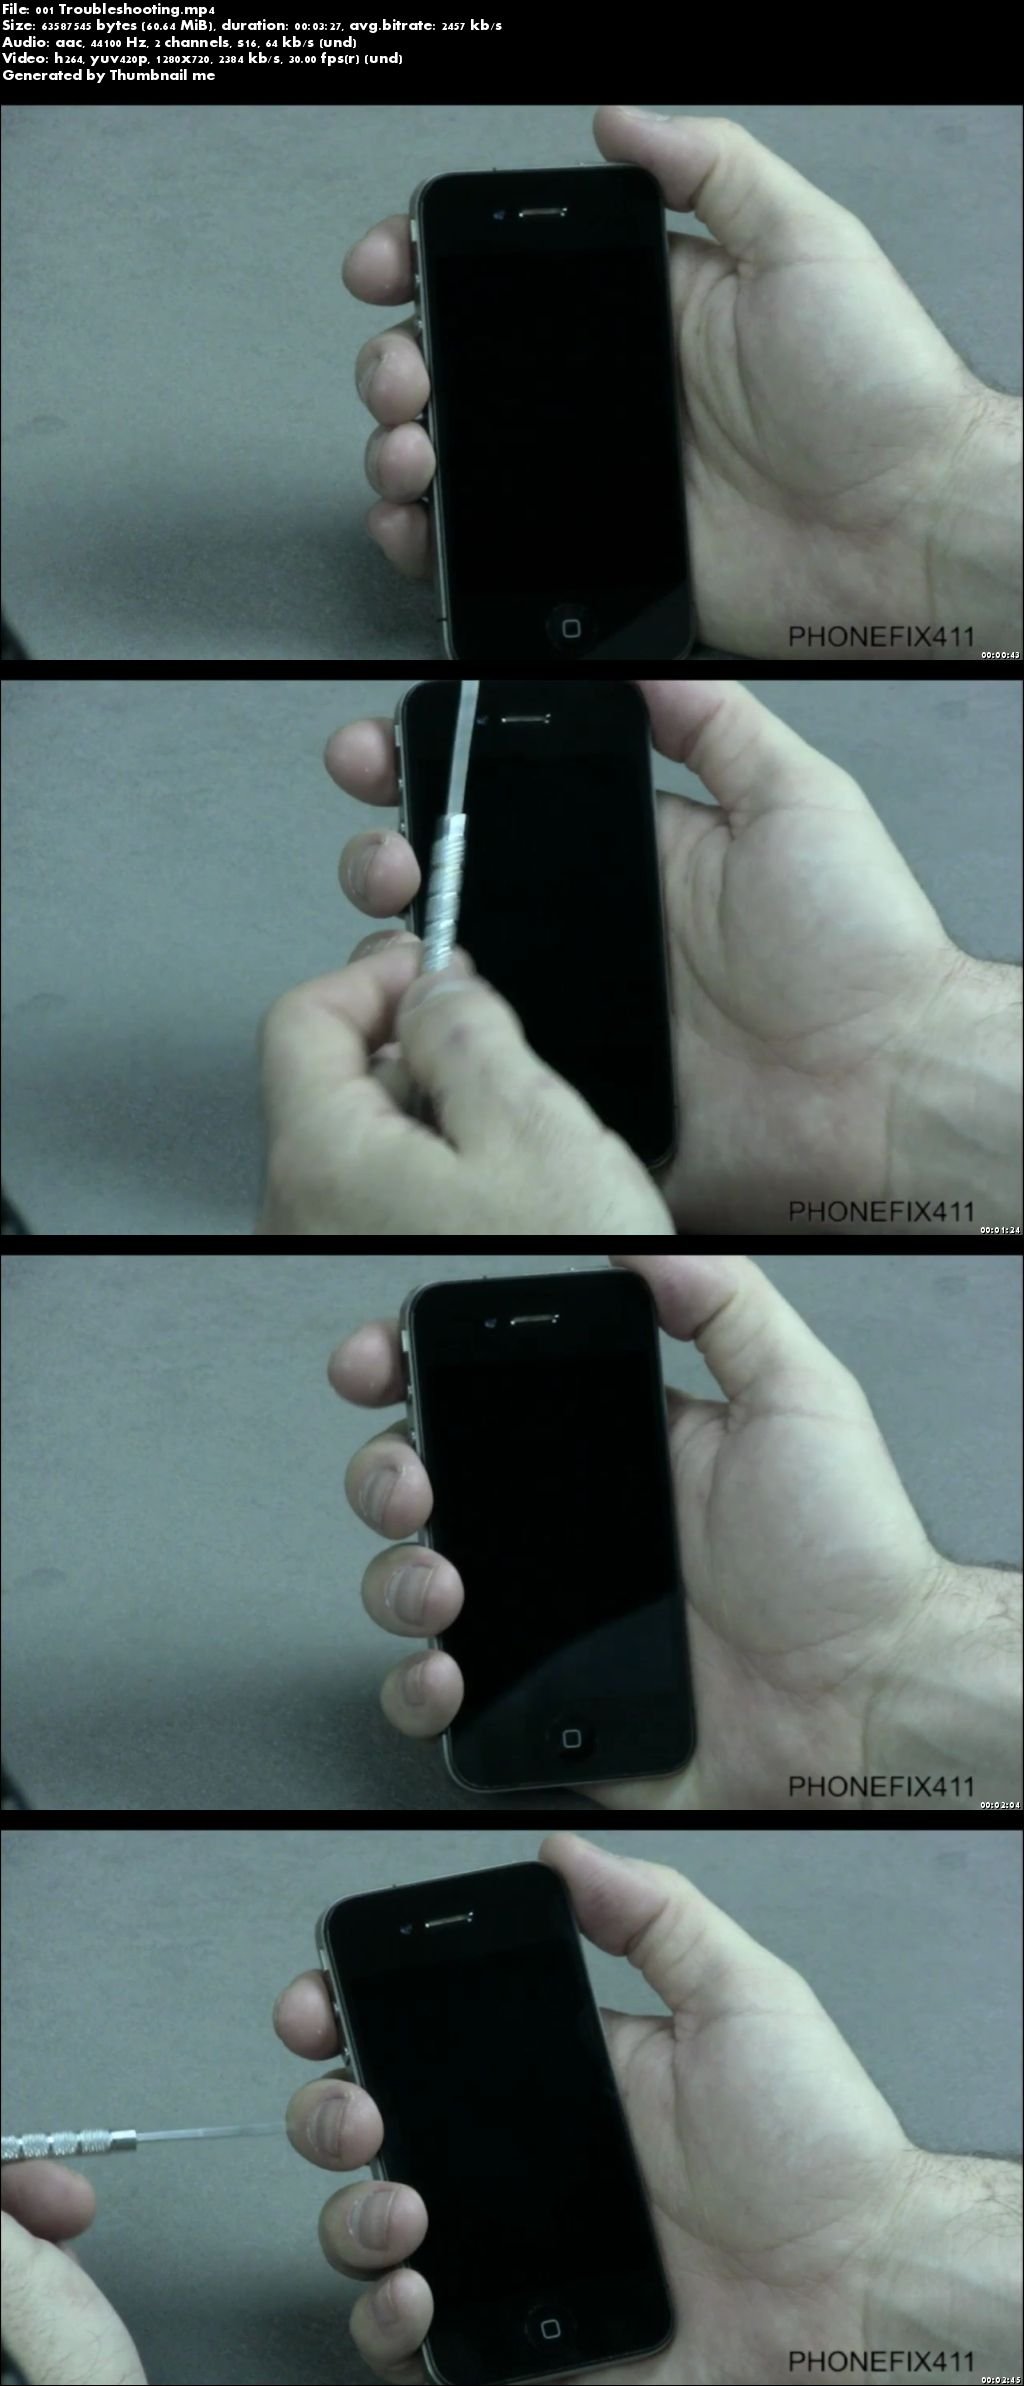 iPhone 4GSM Repair Guide. The Must Have For Any iPhone Tech!